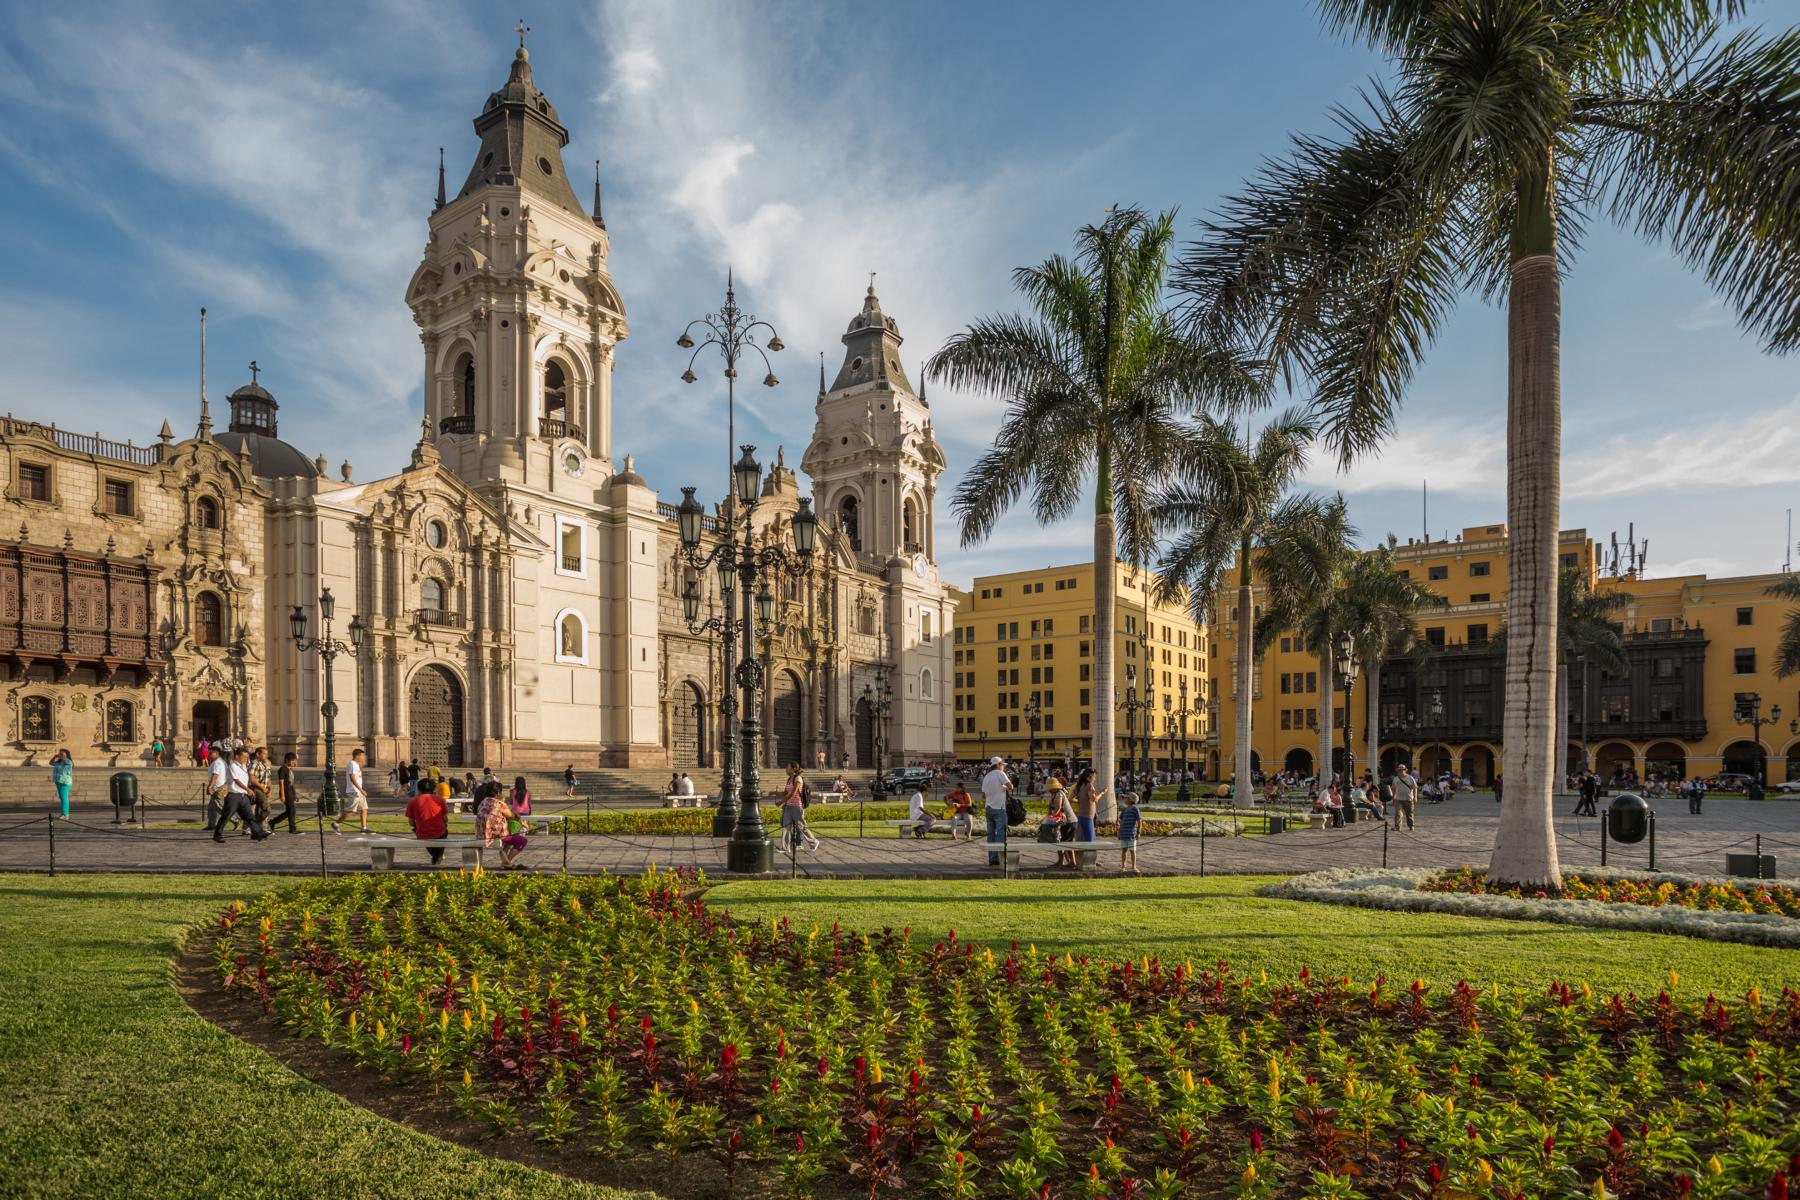 Rundreise - K1600_Lima-Peru-Main-square-cathedral-shutterstock_181523507.jpg